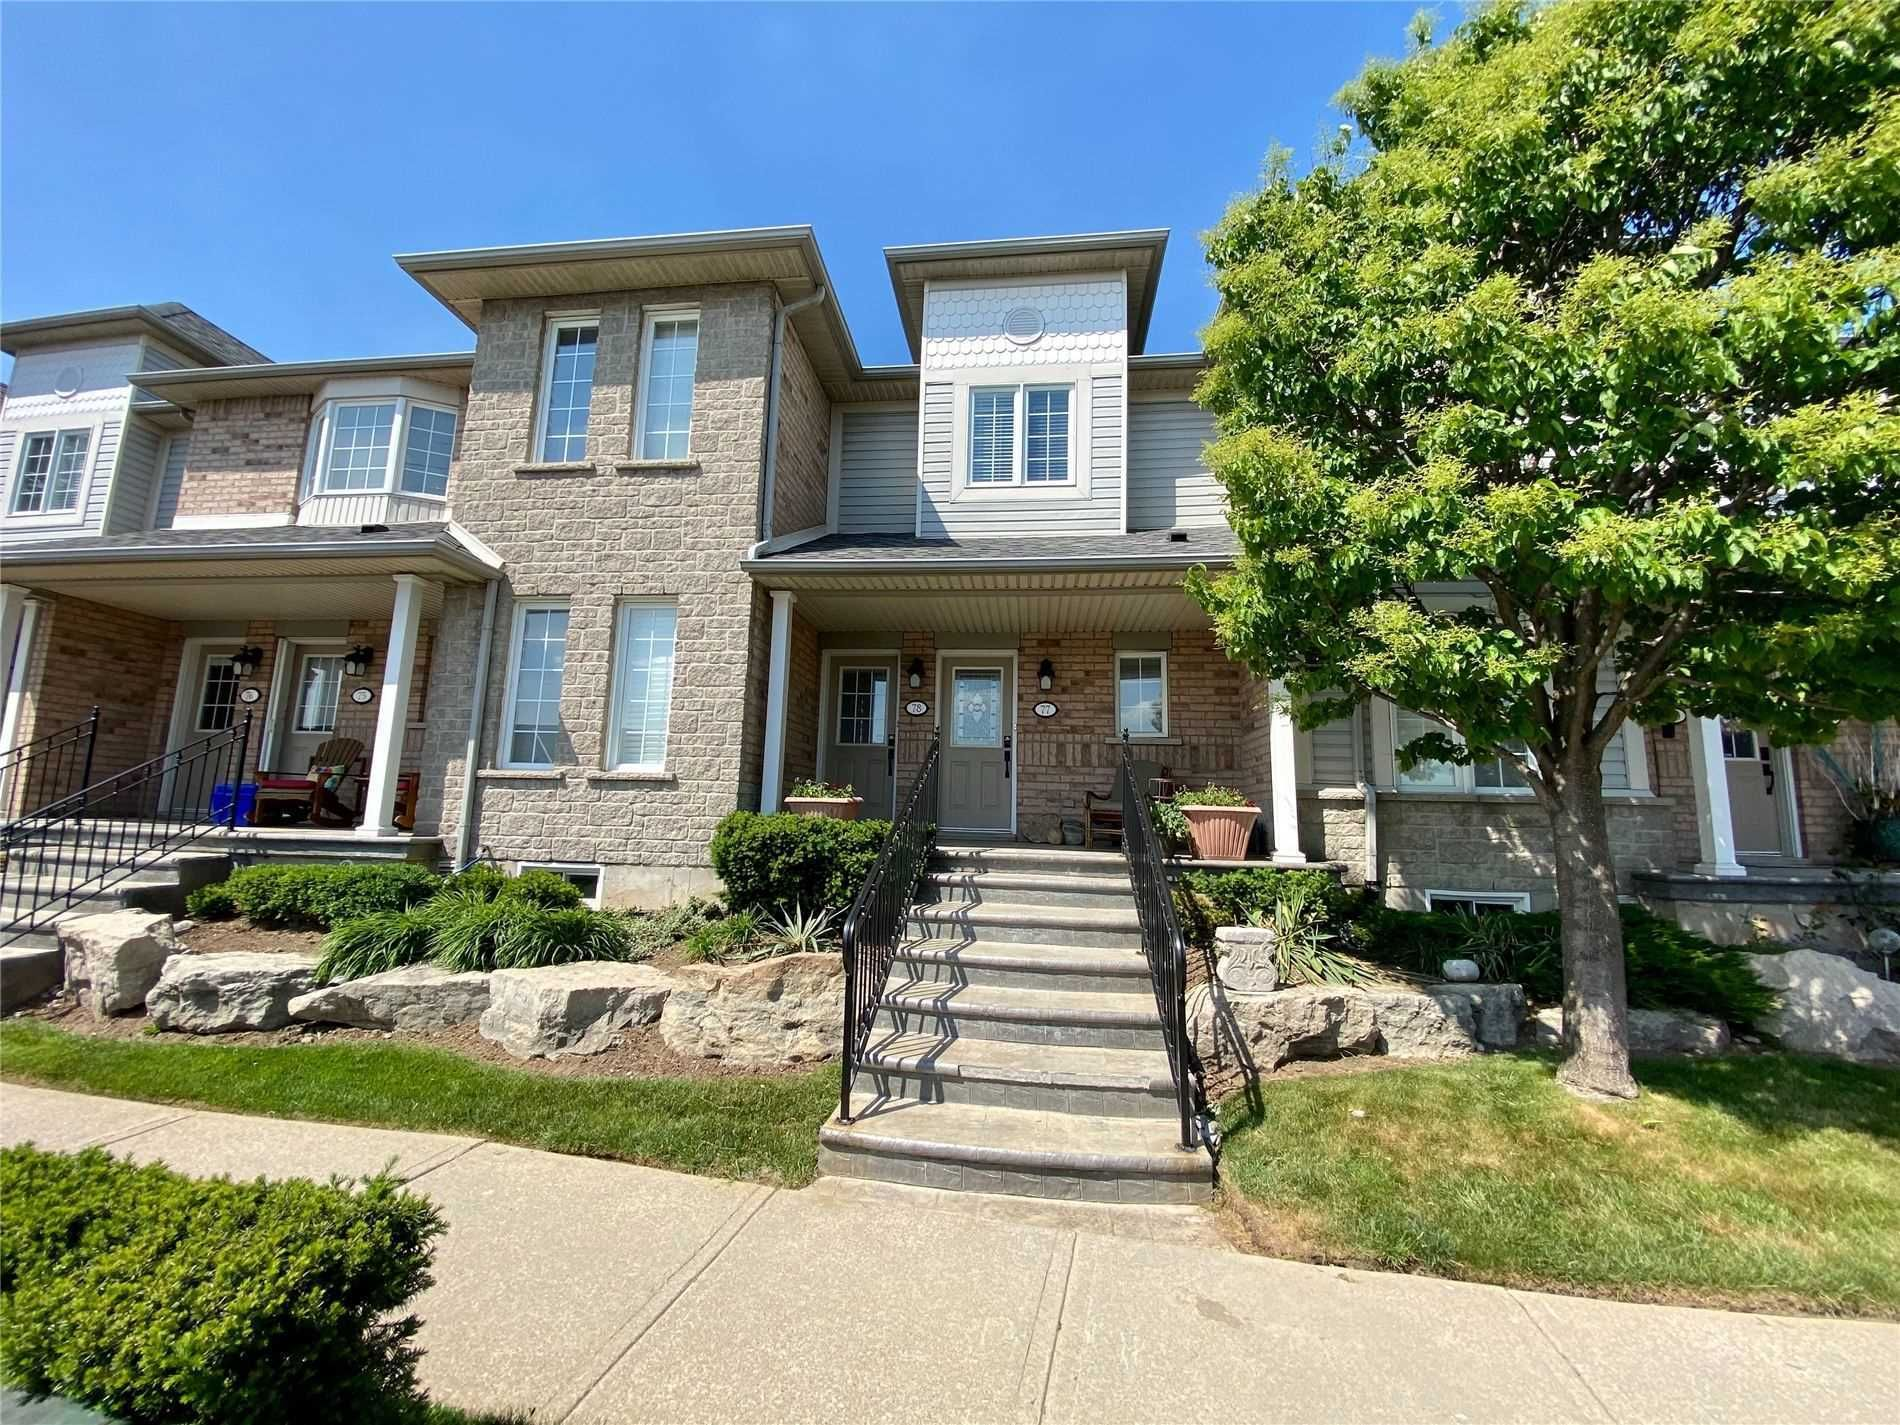 515 North Service Rd, unit 78 for sale in Toronto - image #2